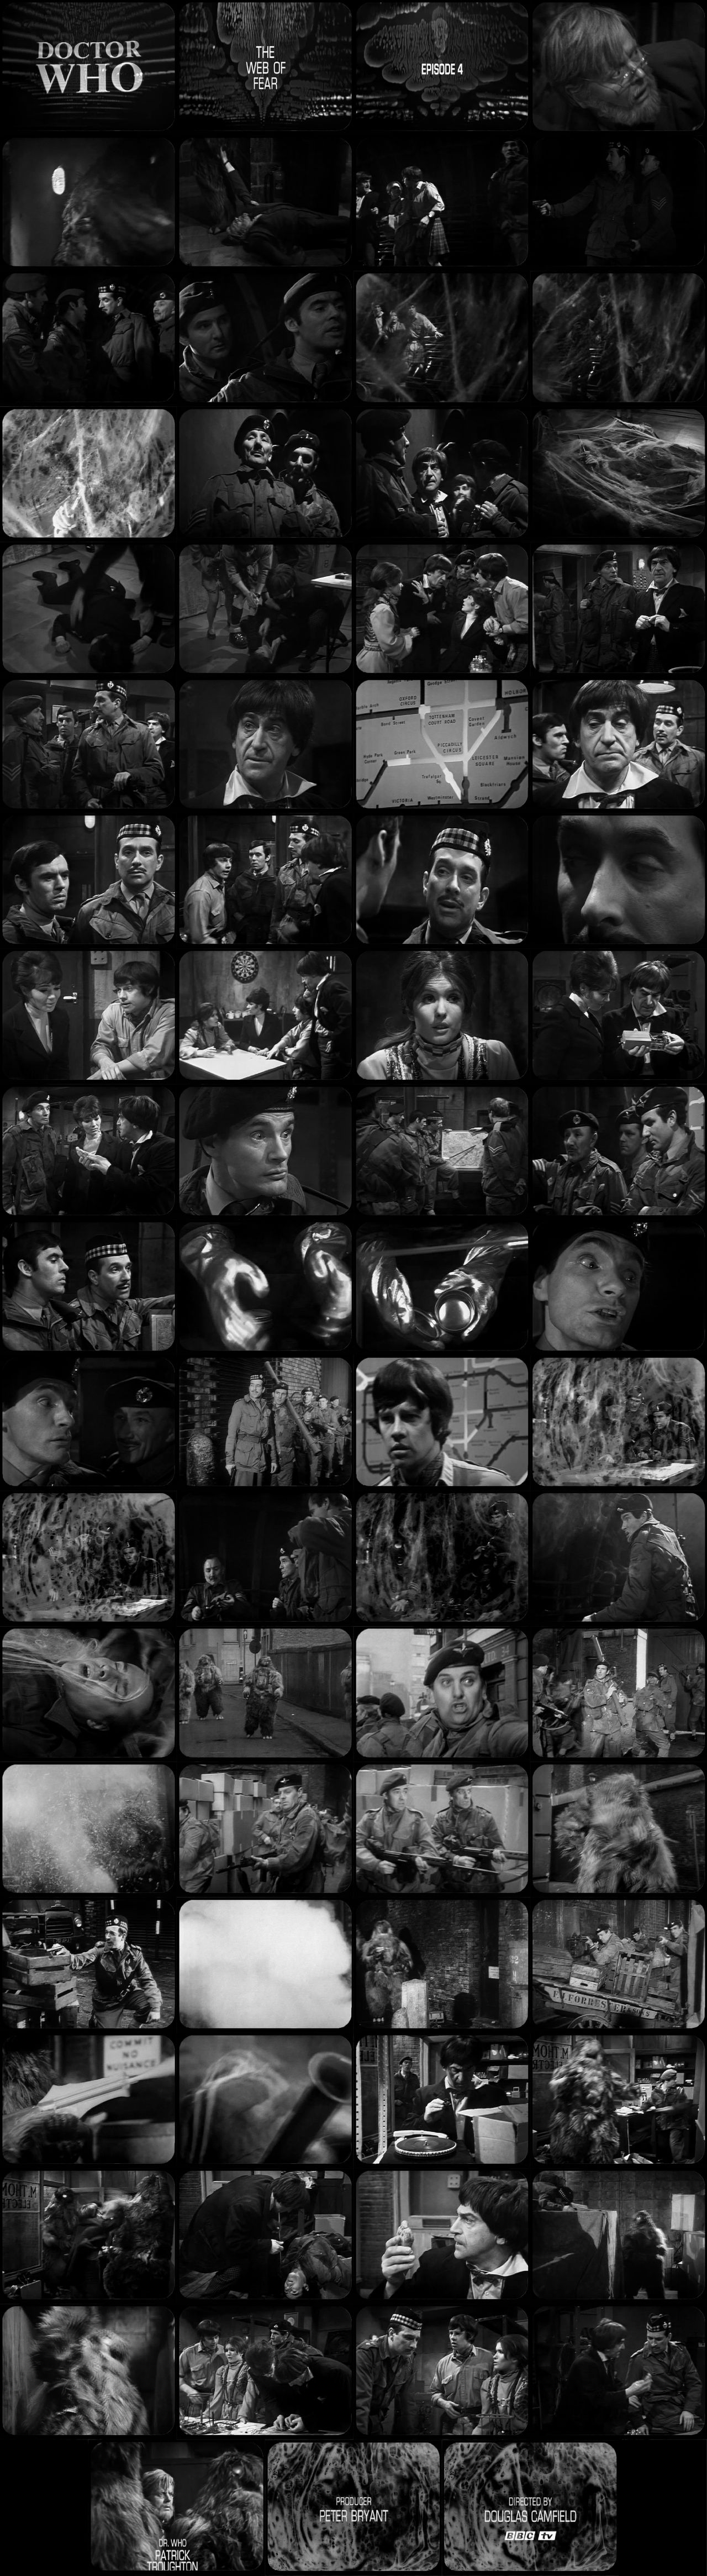 The Web of Fear Episode 4 Tele-Snaps